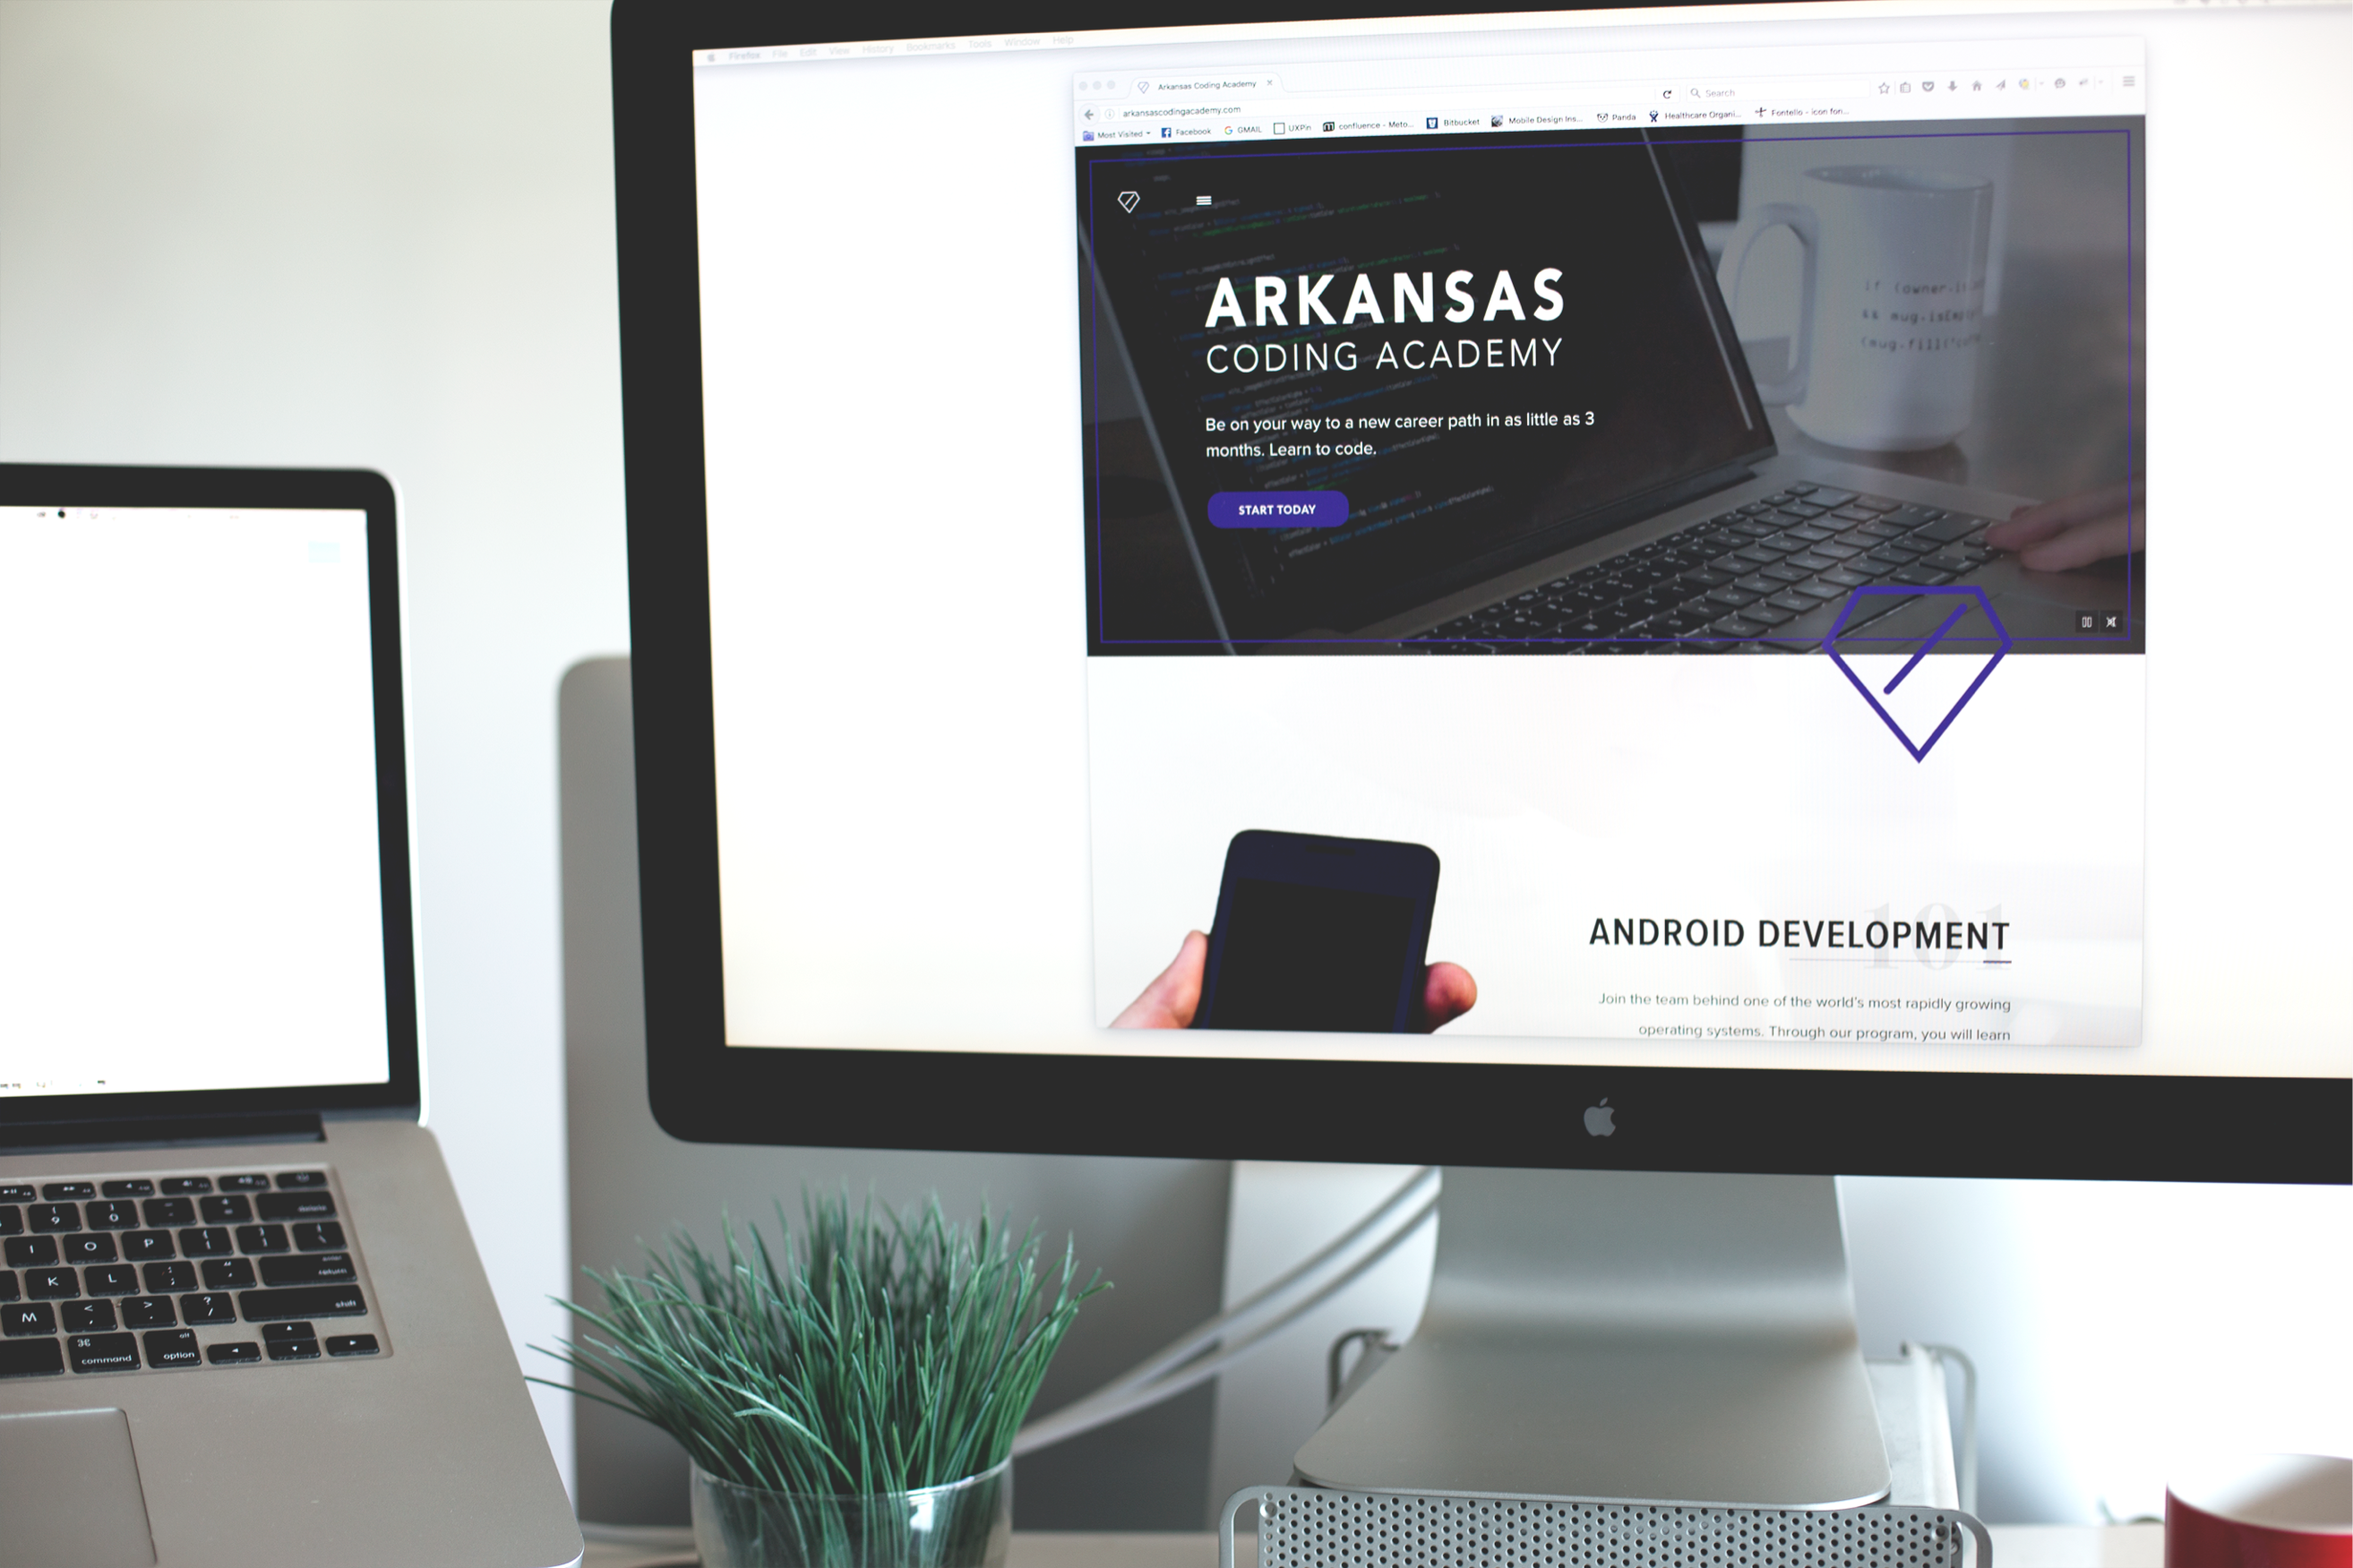 arkansas coding academy website on a computer